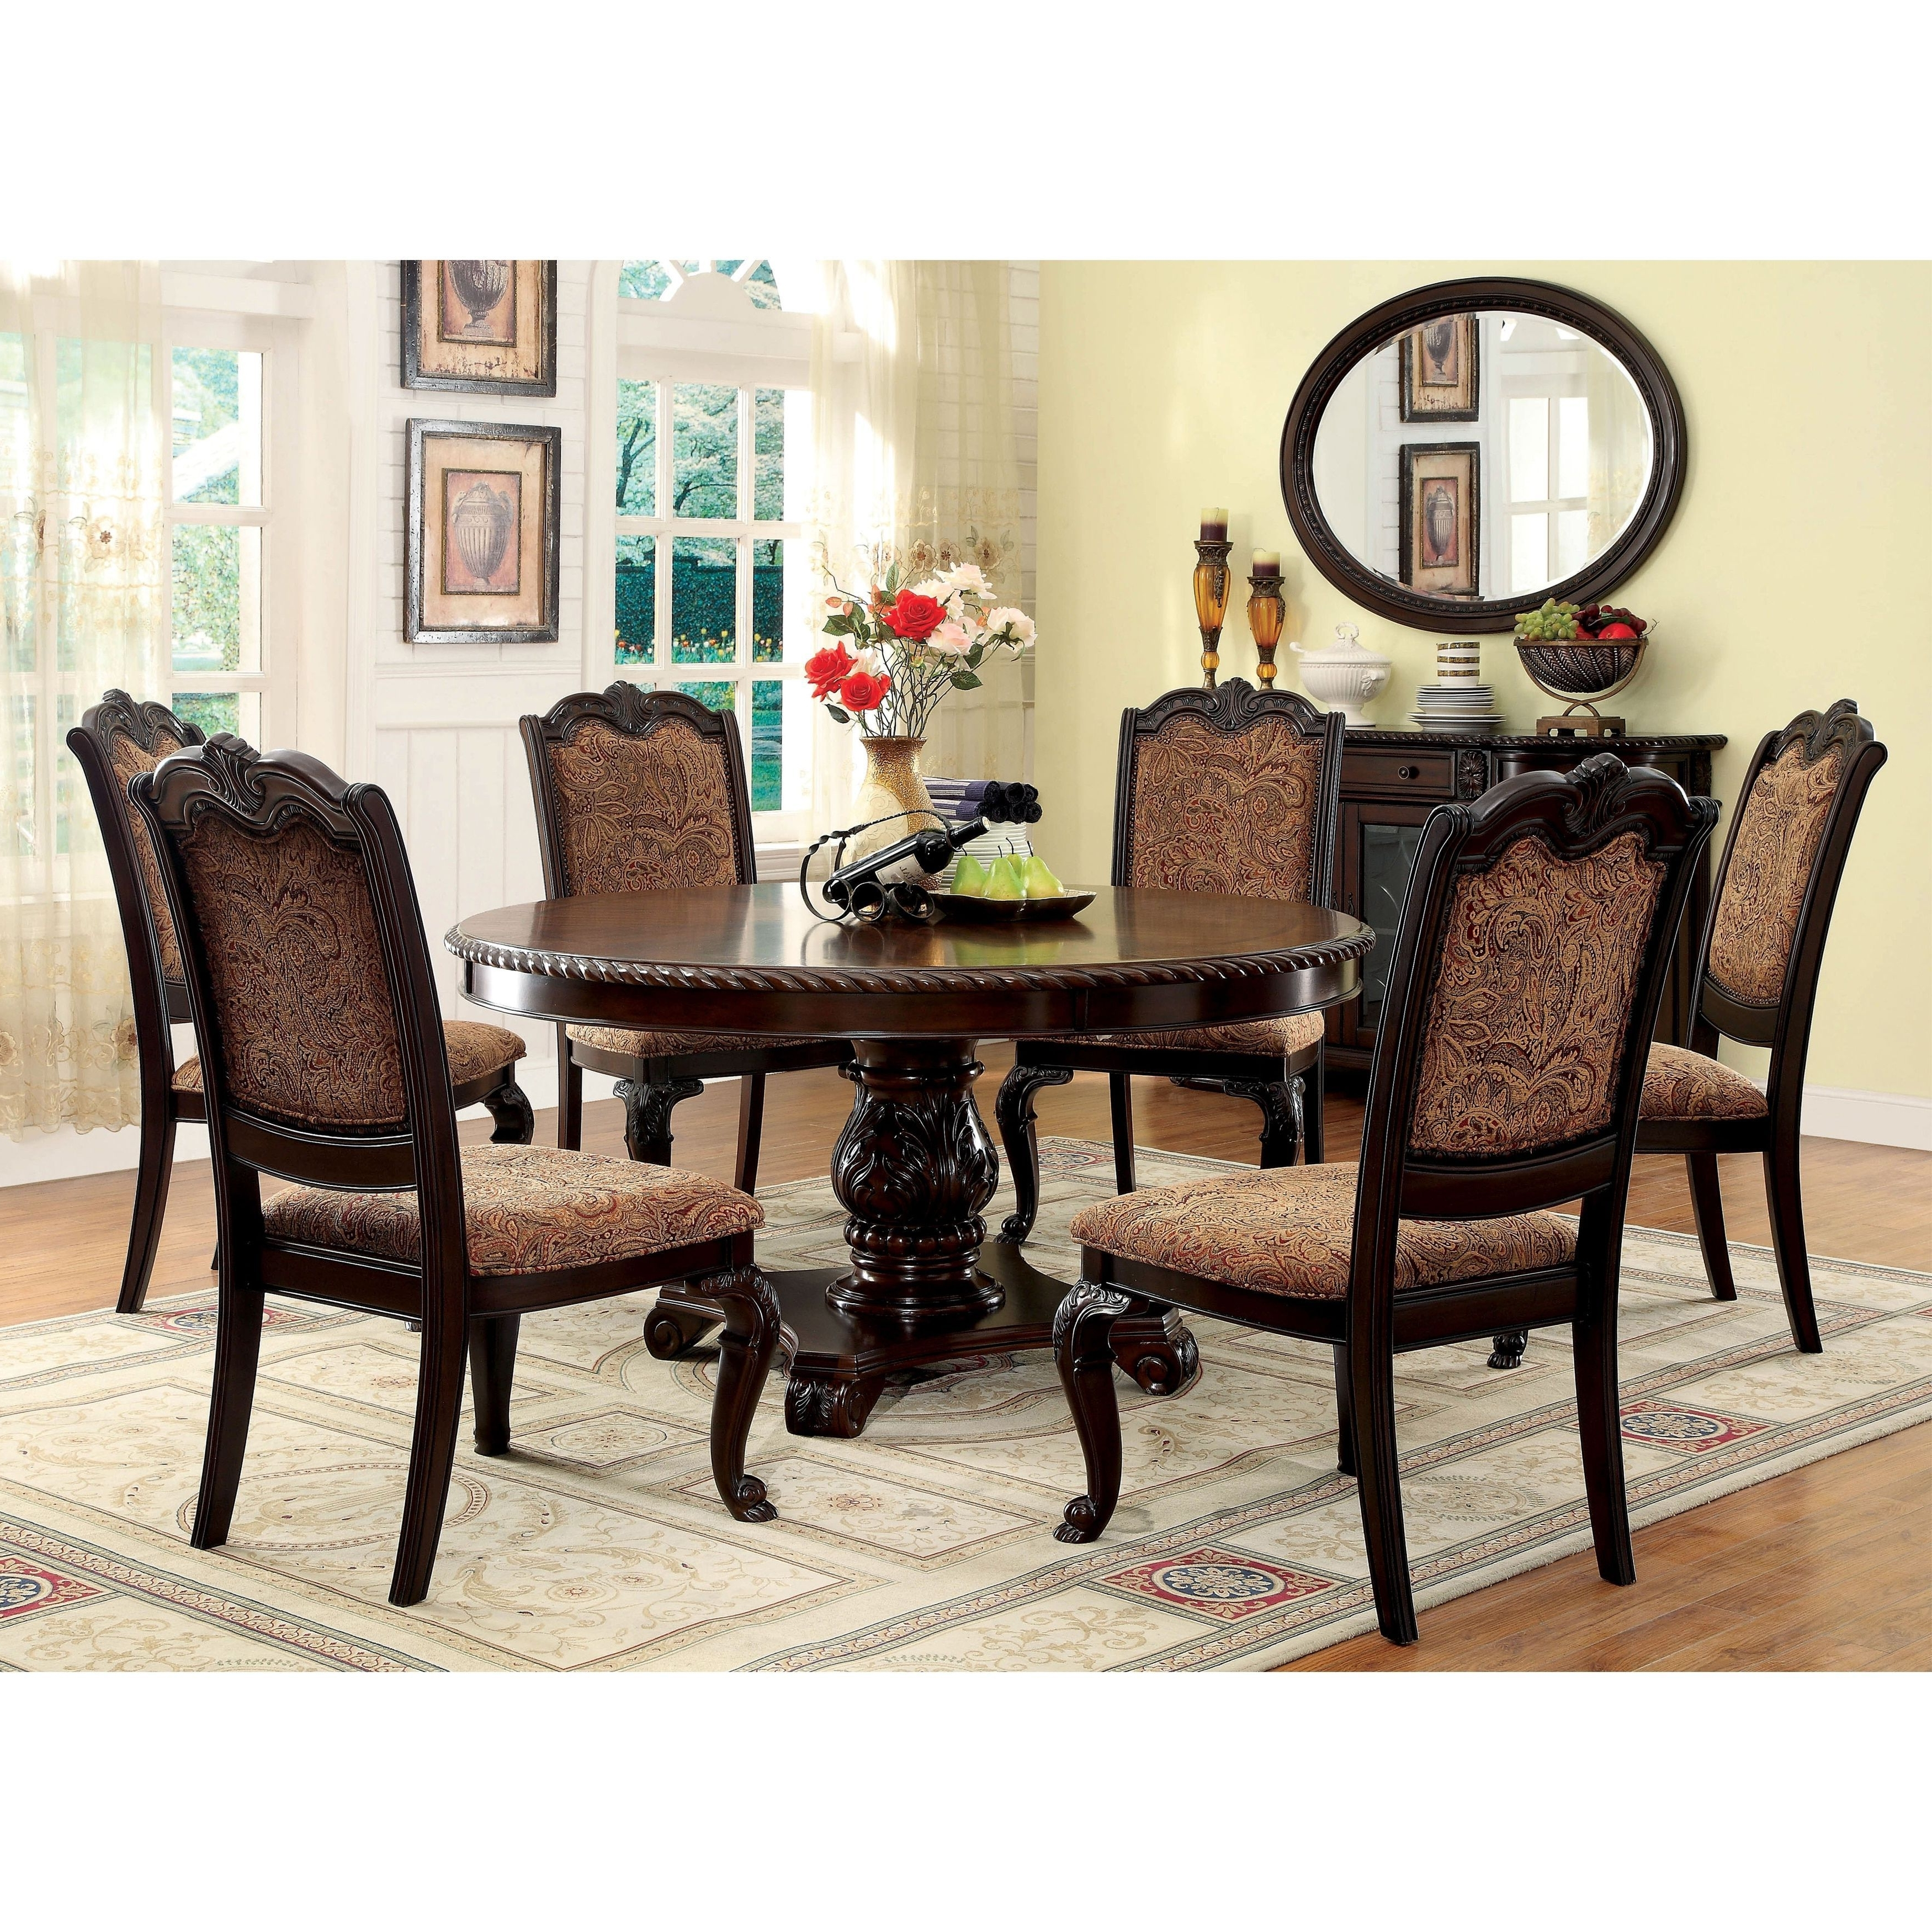 Famous Norwood 7 Piece Rectangle Extension Dining Sets With Regard To Furniture Of America Oskarre Iii Brown Cherry (Red) 7 Piece Formal (View 5 of 25)